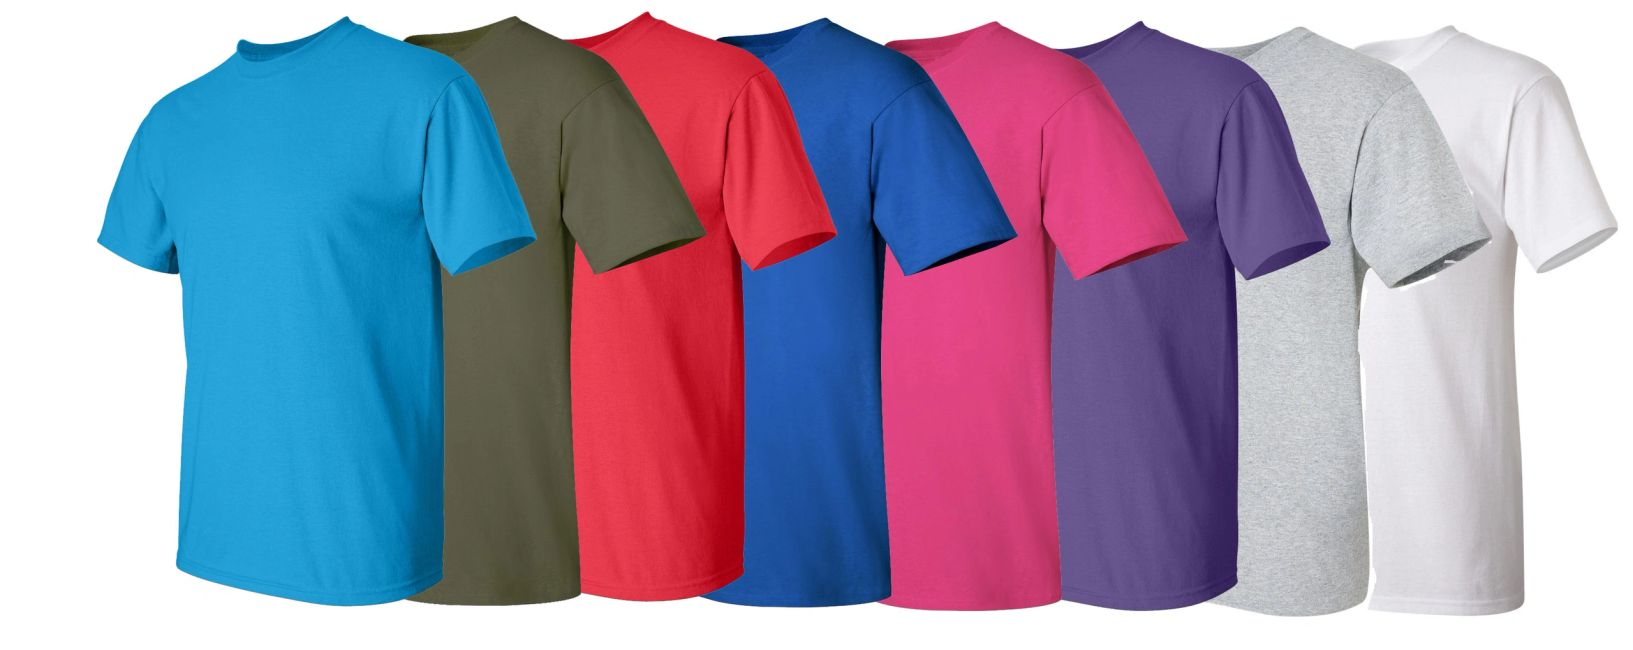 Different, blank, plain color t-shirts in various colors.